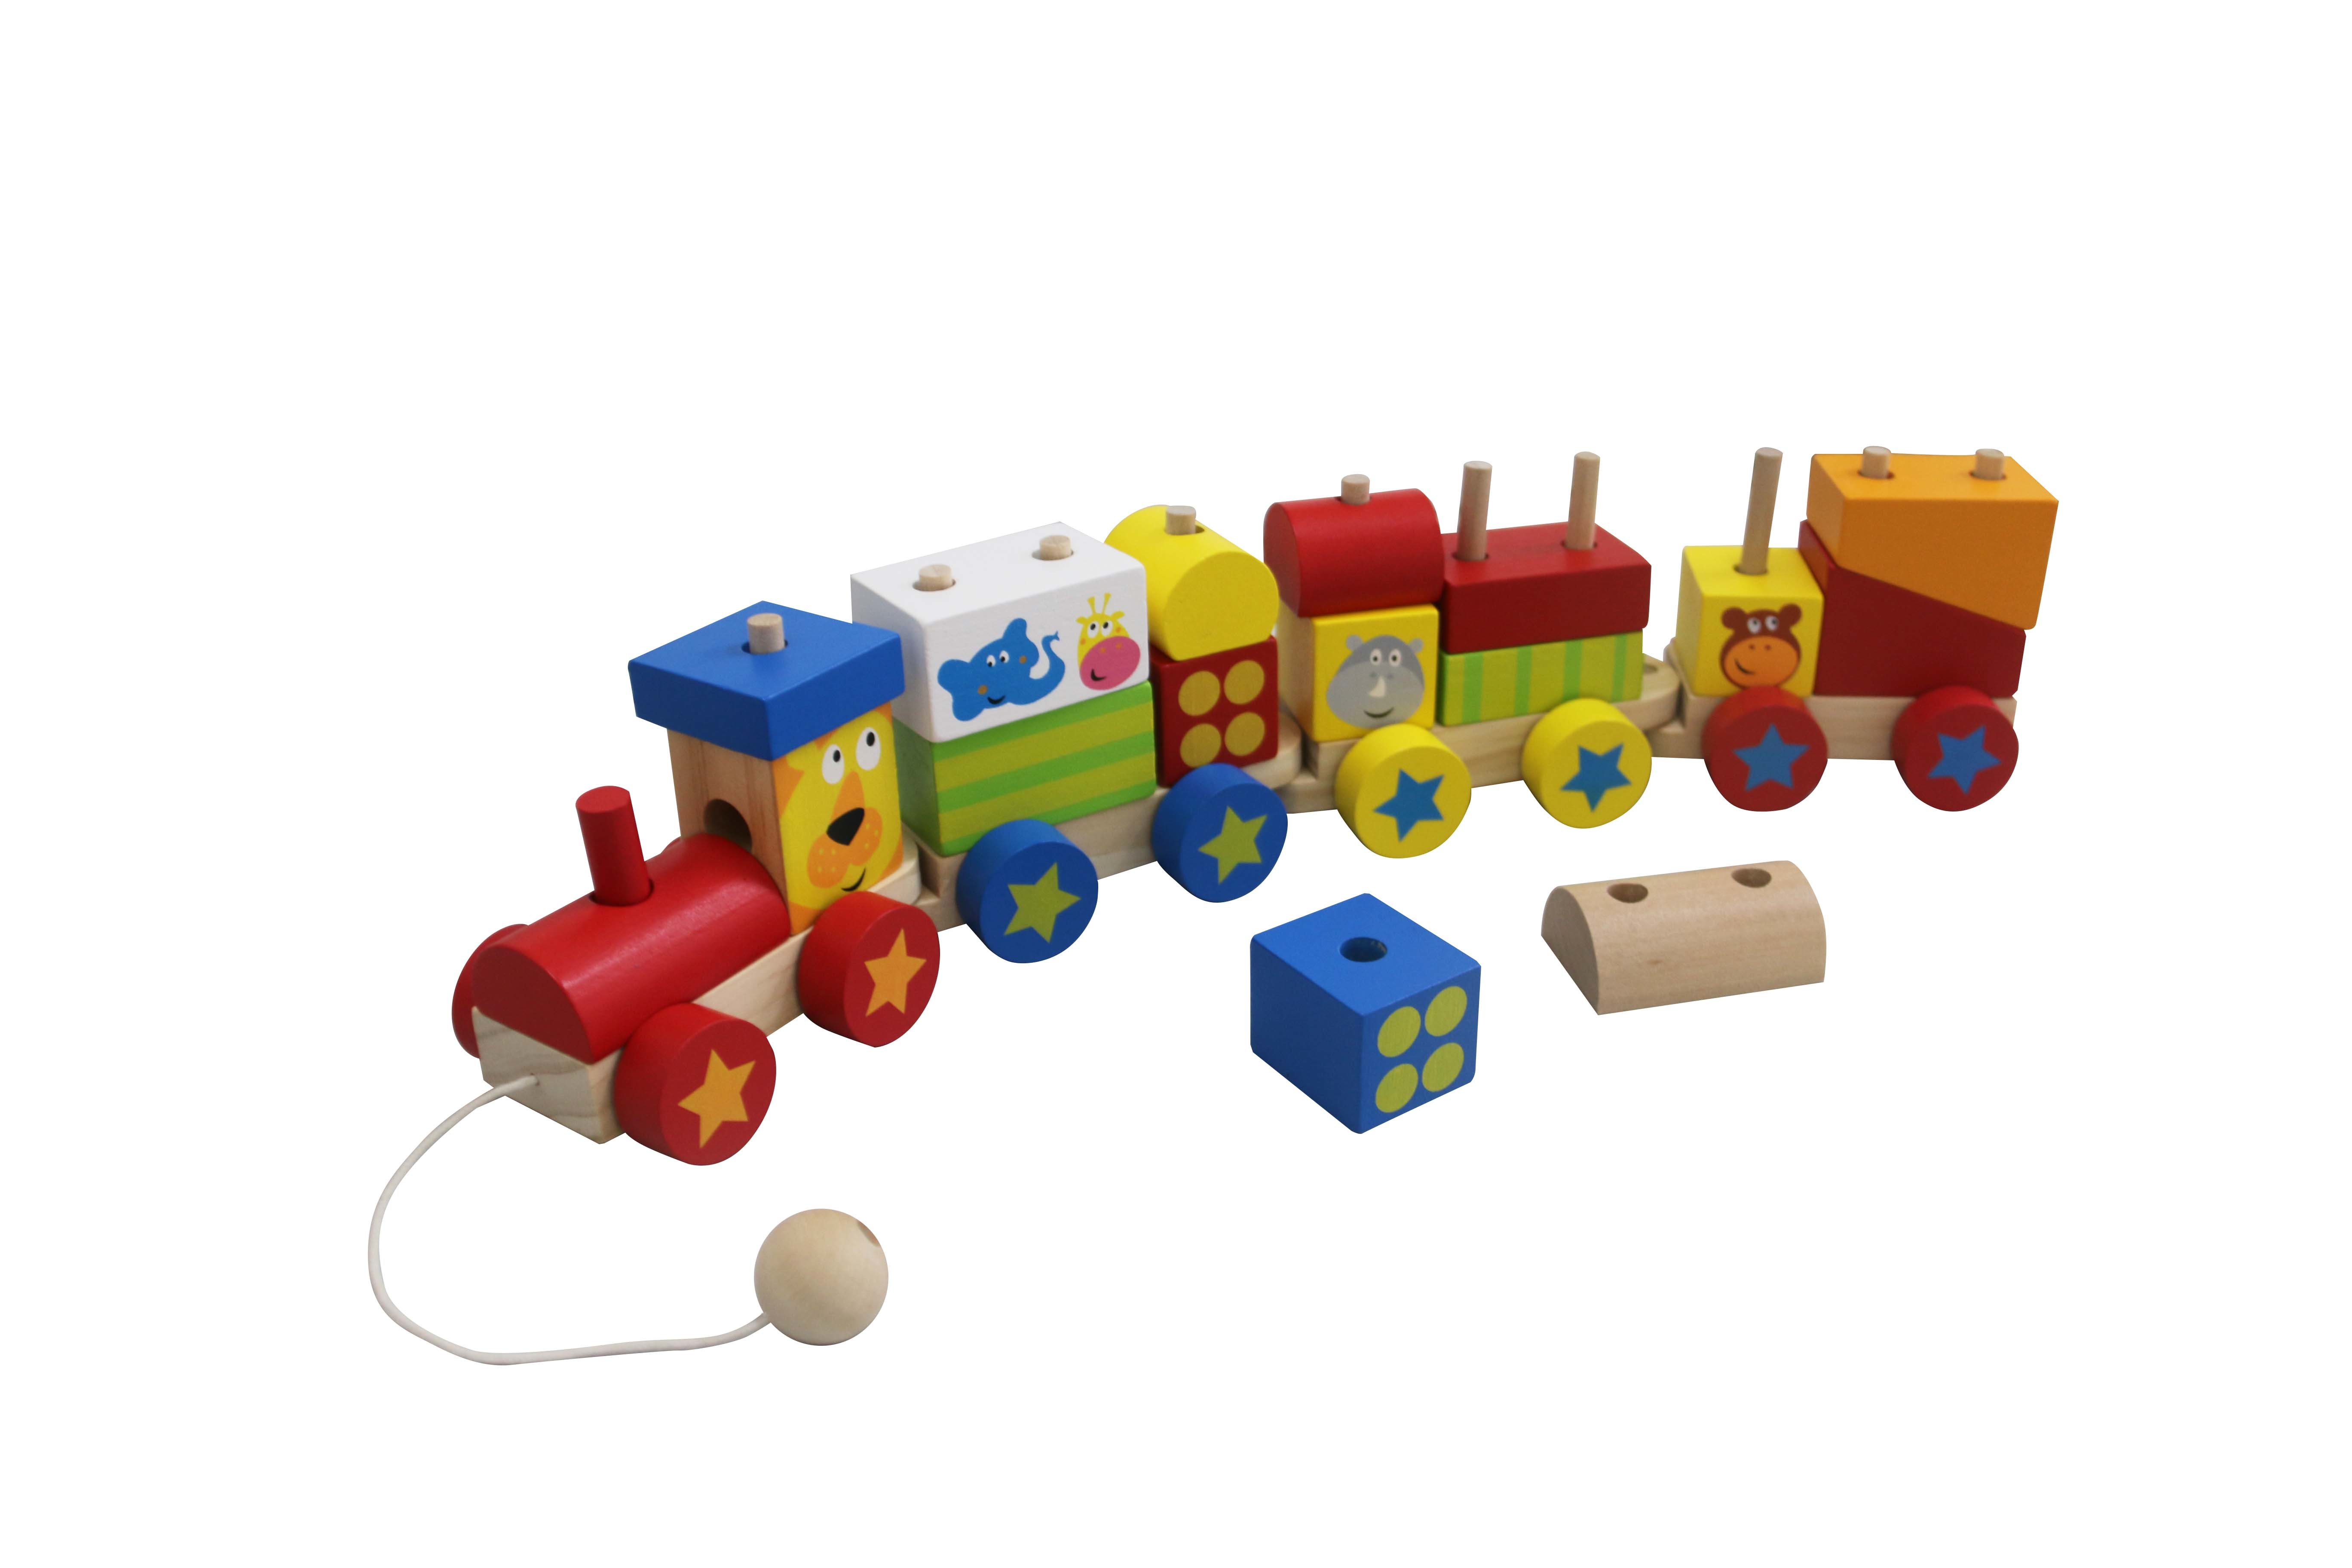 Wooden Block Train Toy with 4 Carriage for Toddlers